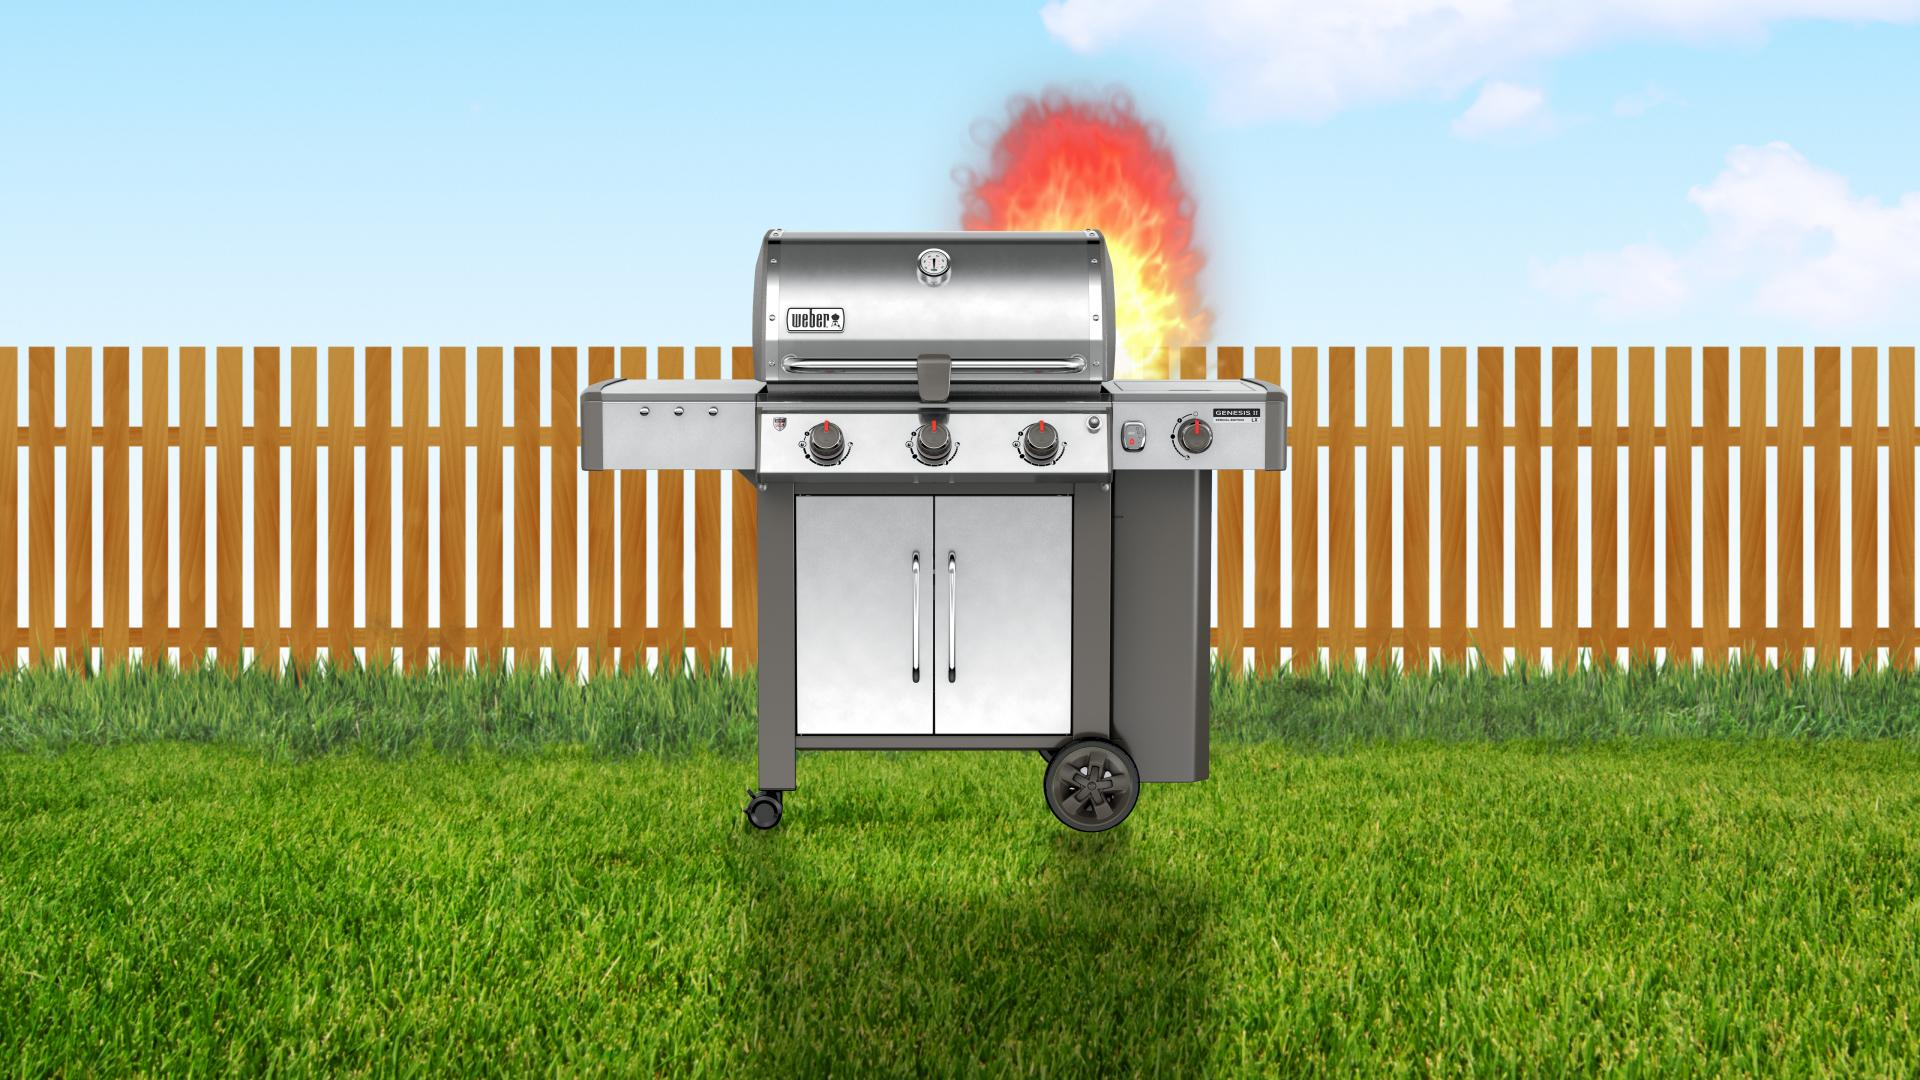 Make a Stainless Steel Grill Last